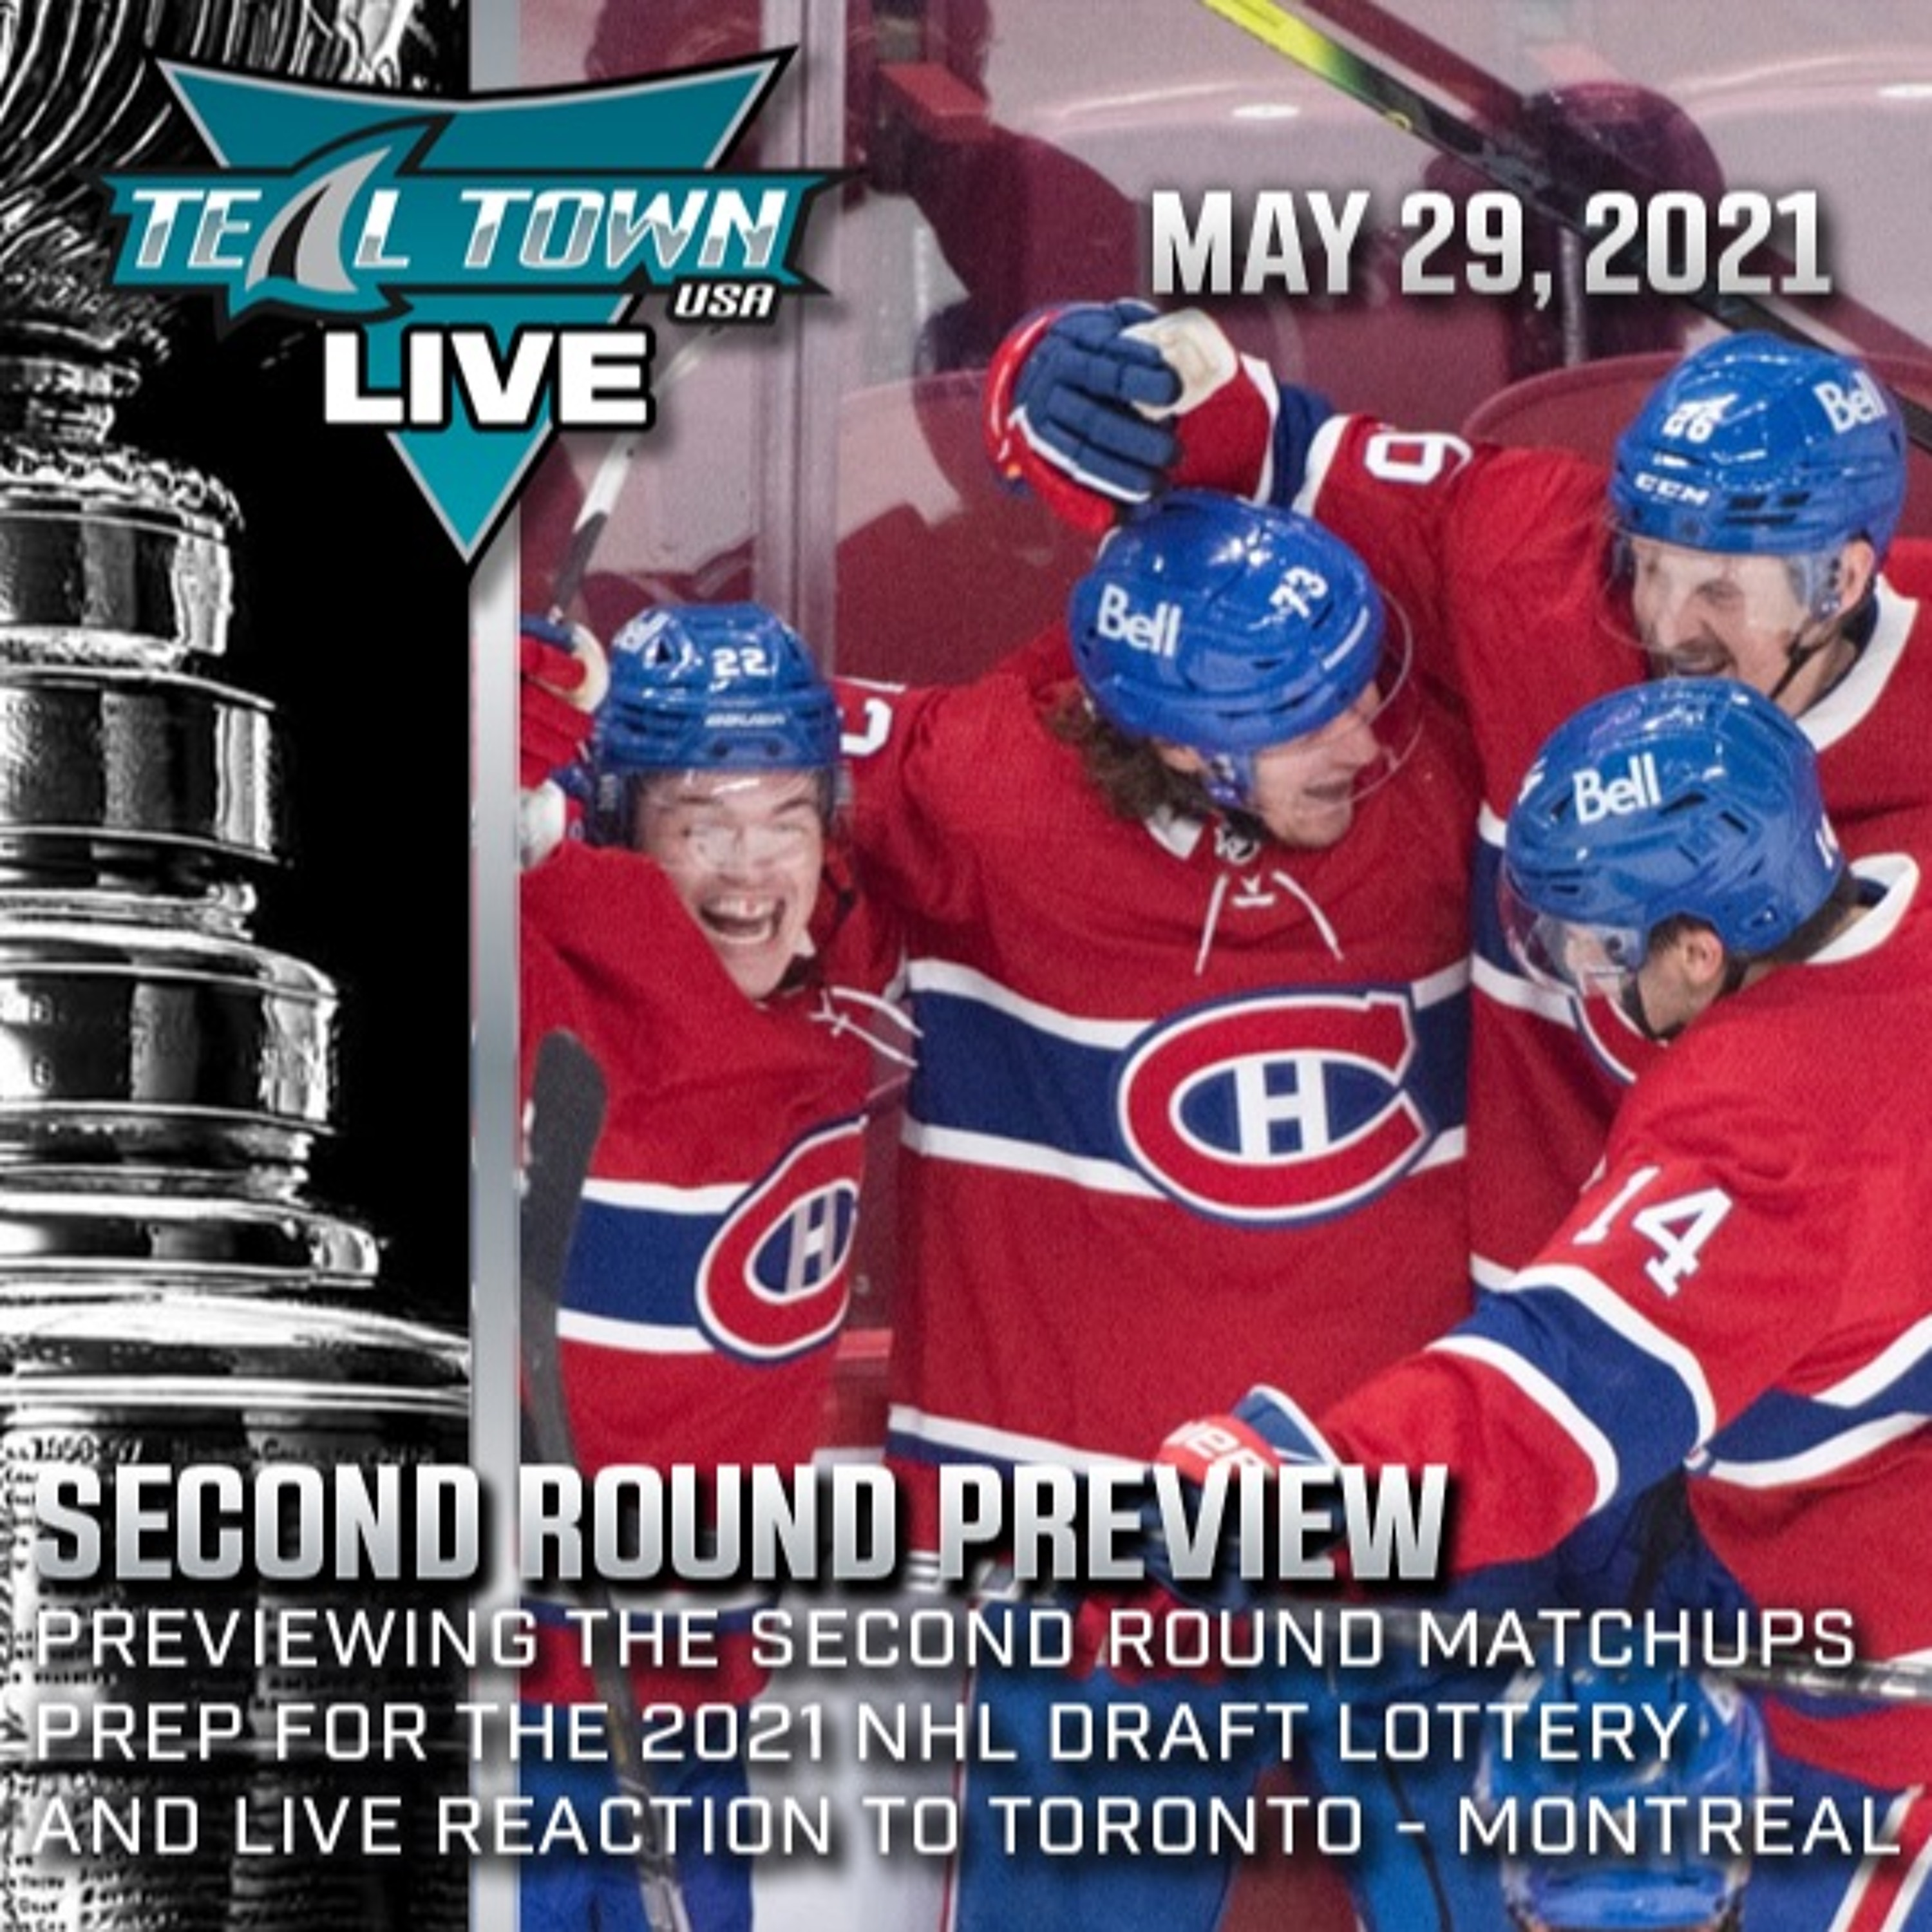 2021 NHL Stanley Cup Playoffs Second Round Preview - 5-29-2021 - Teal Town USA Live